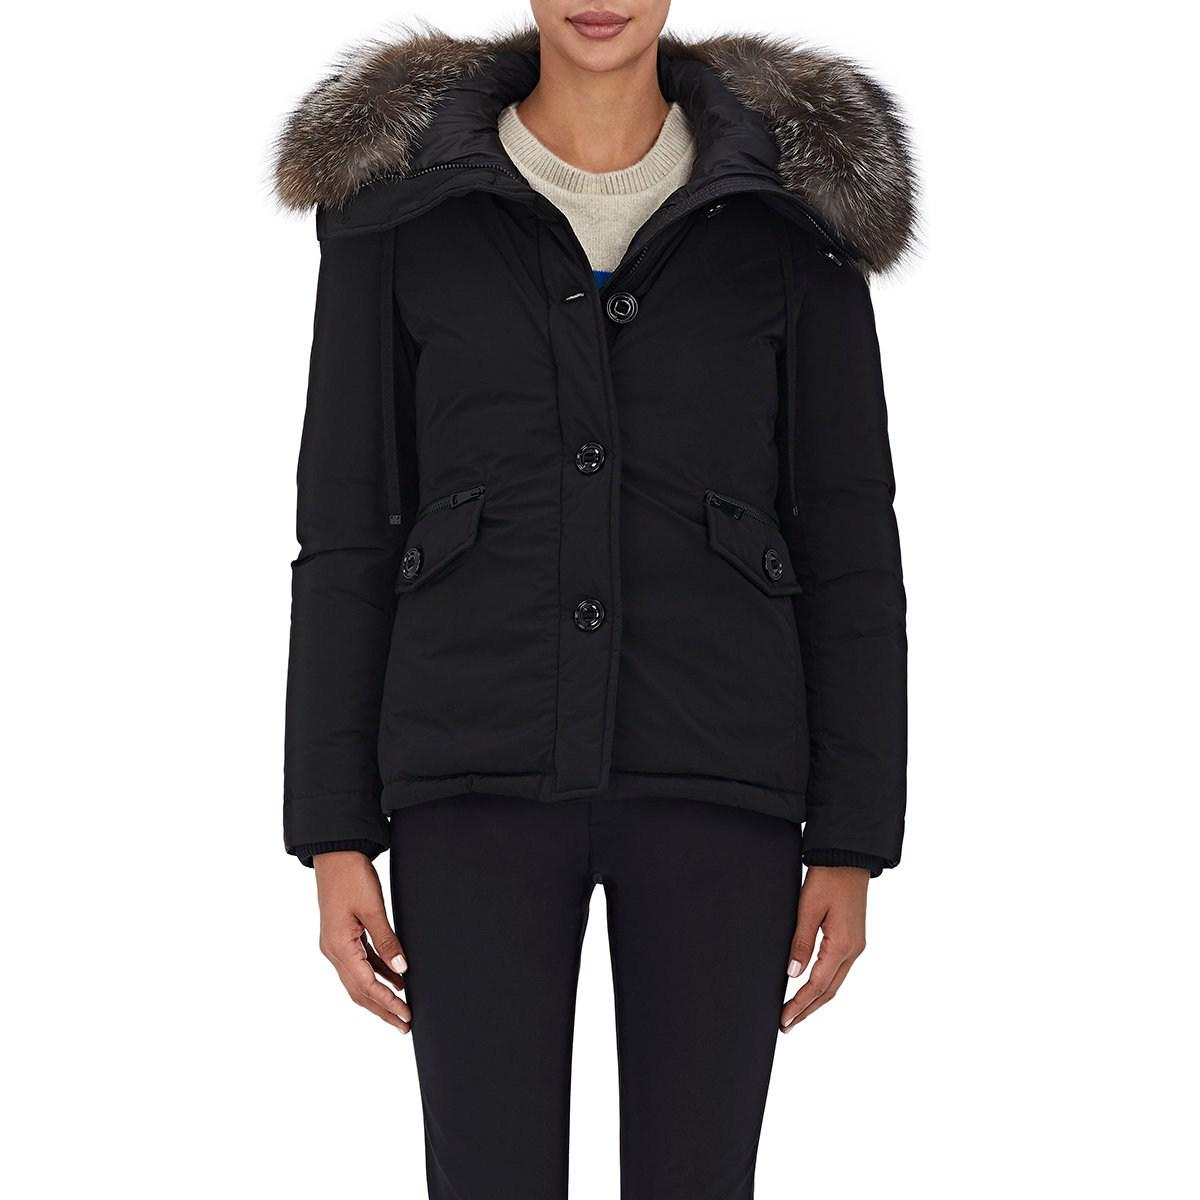 0abc986e2 Moncler Malus Fur-trimmed Down Jacket in Black - Save 12% - Lyst